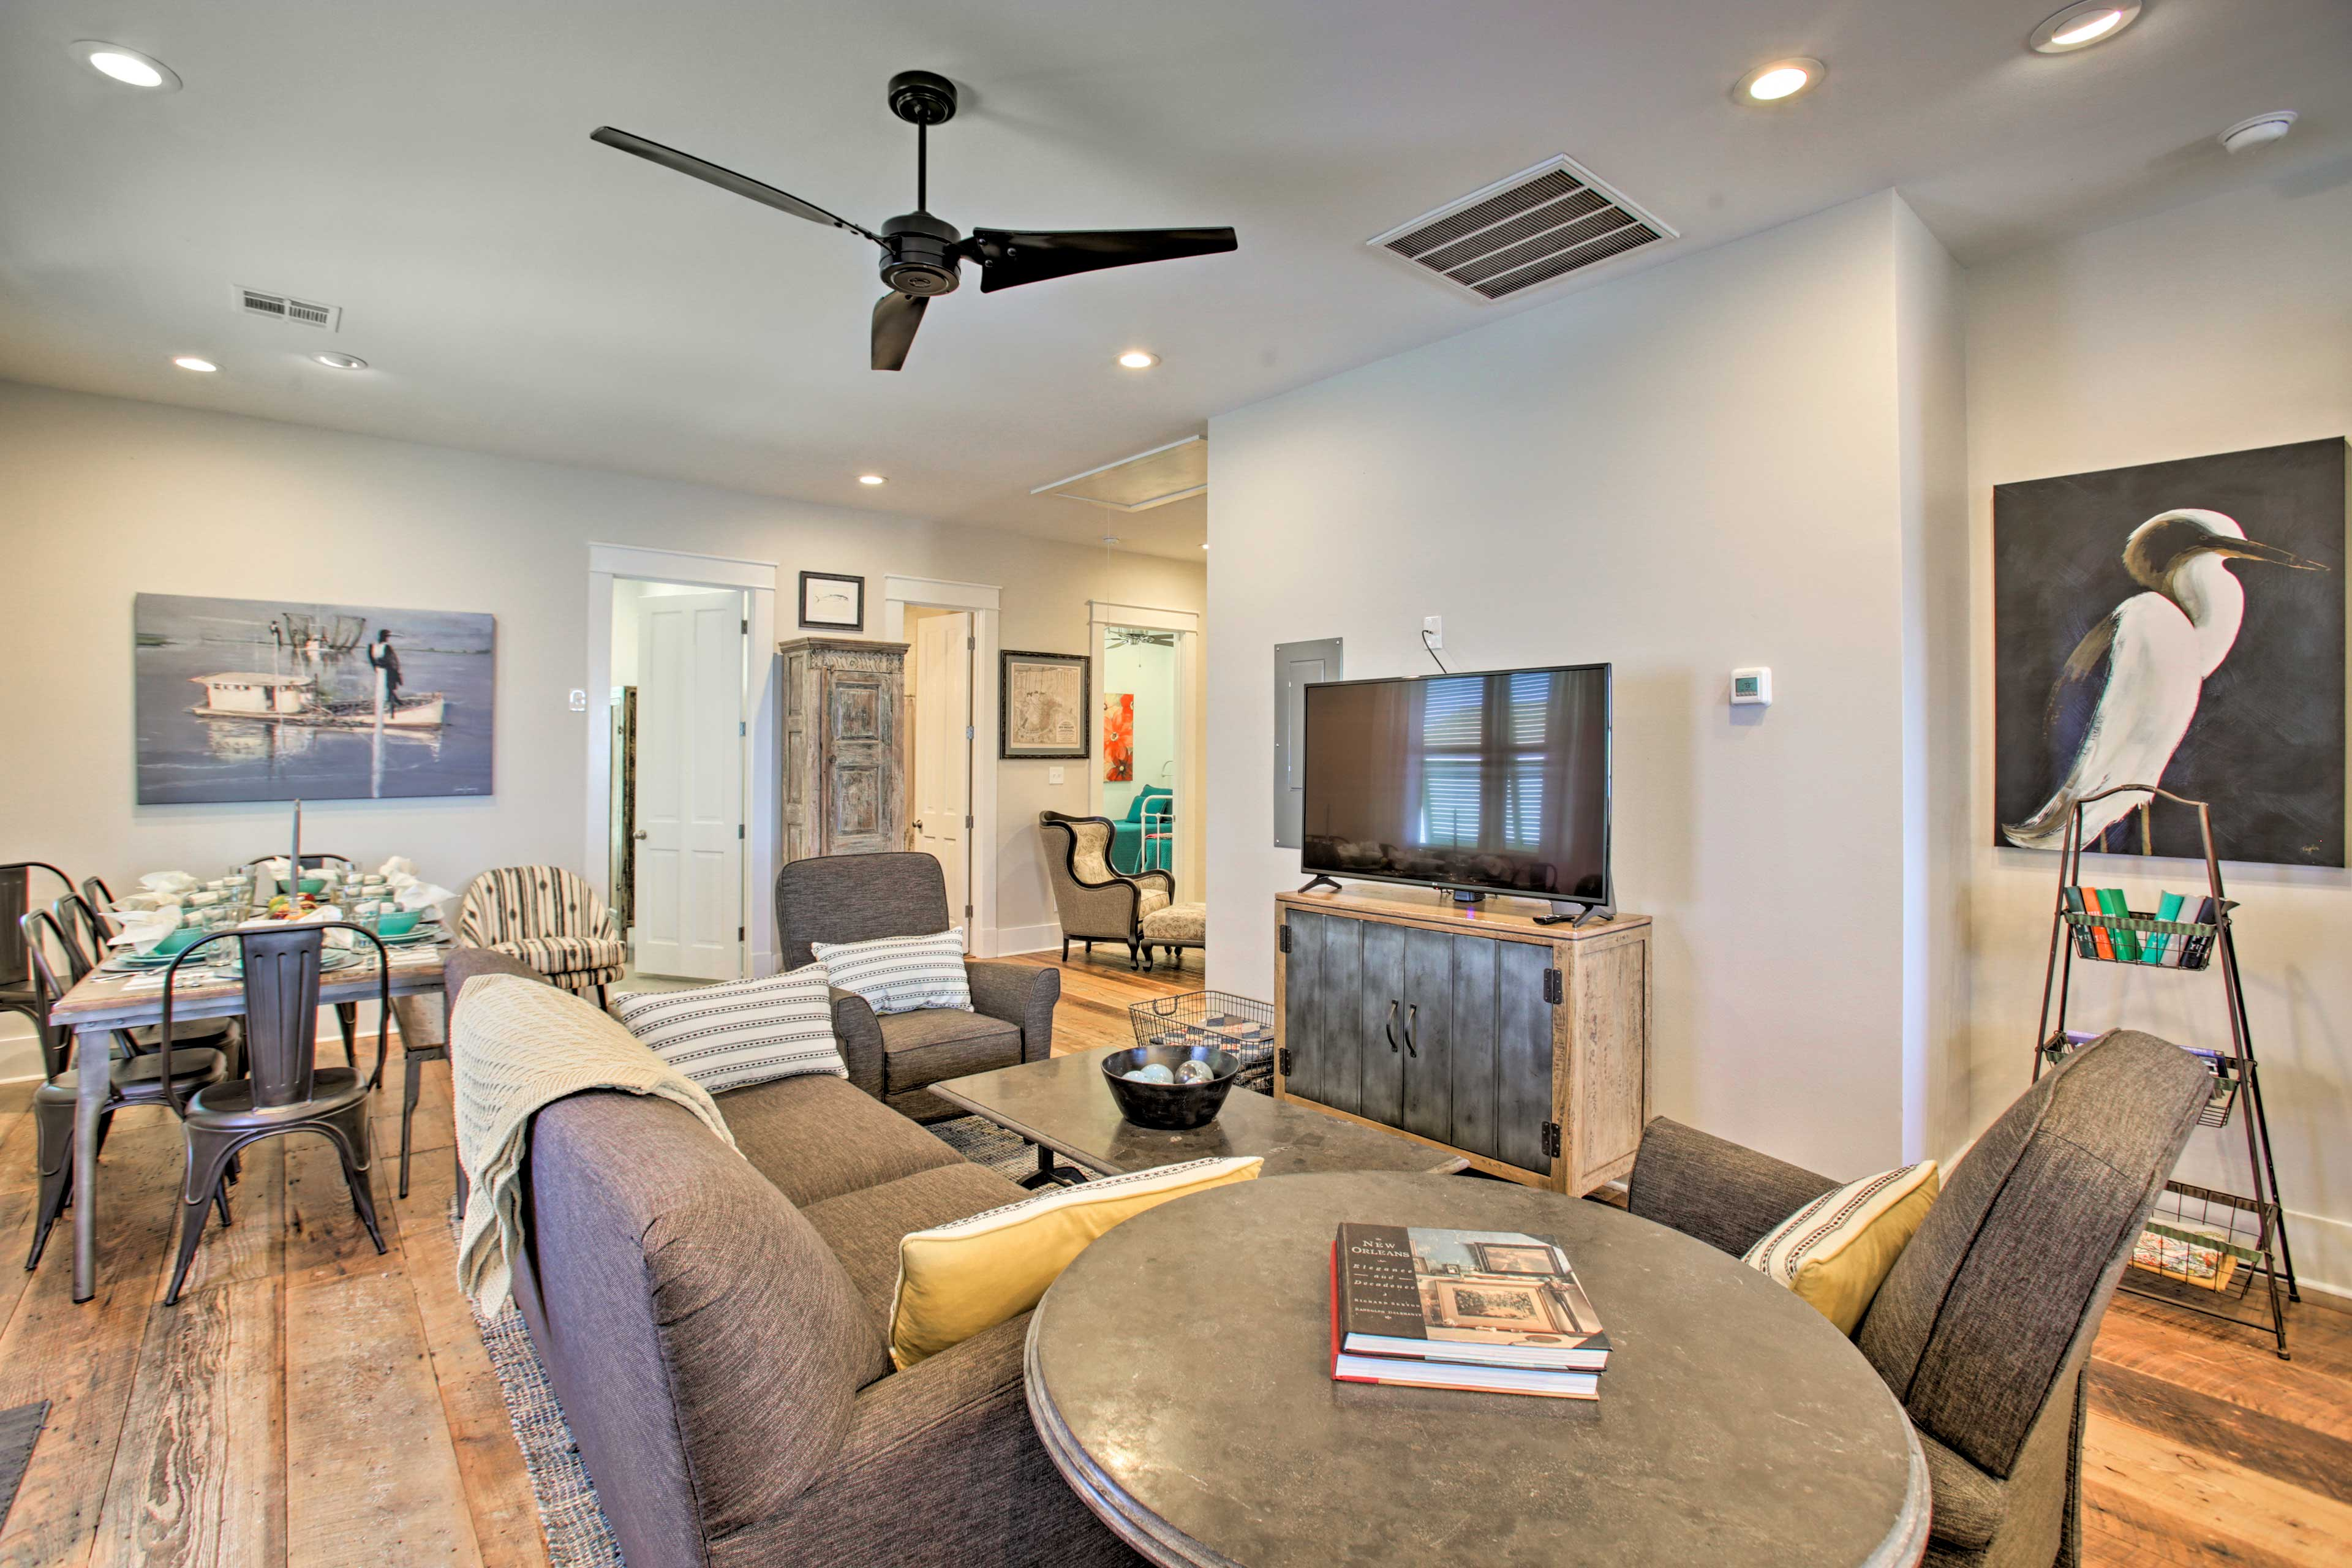 Inside, the bright interior blends rustic cottage style with modern detail.